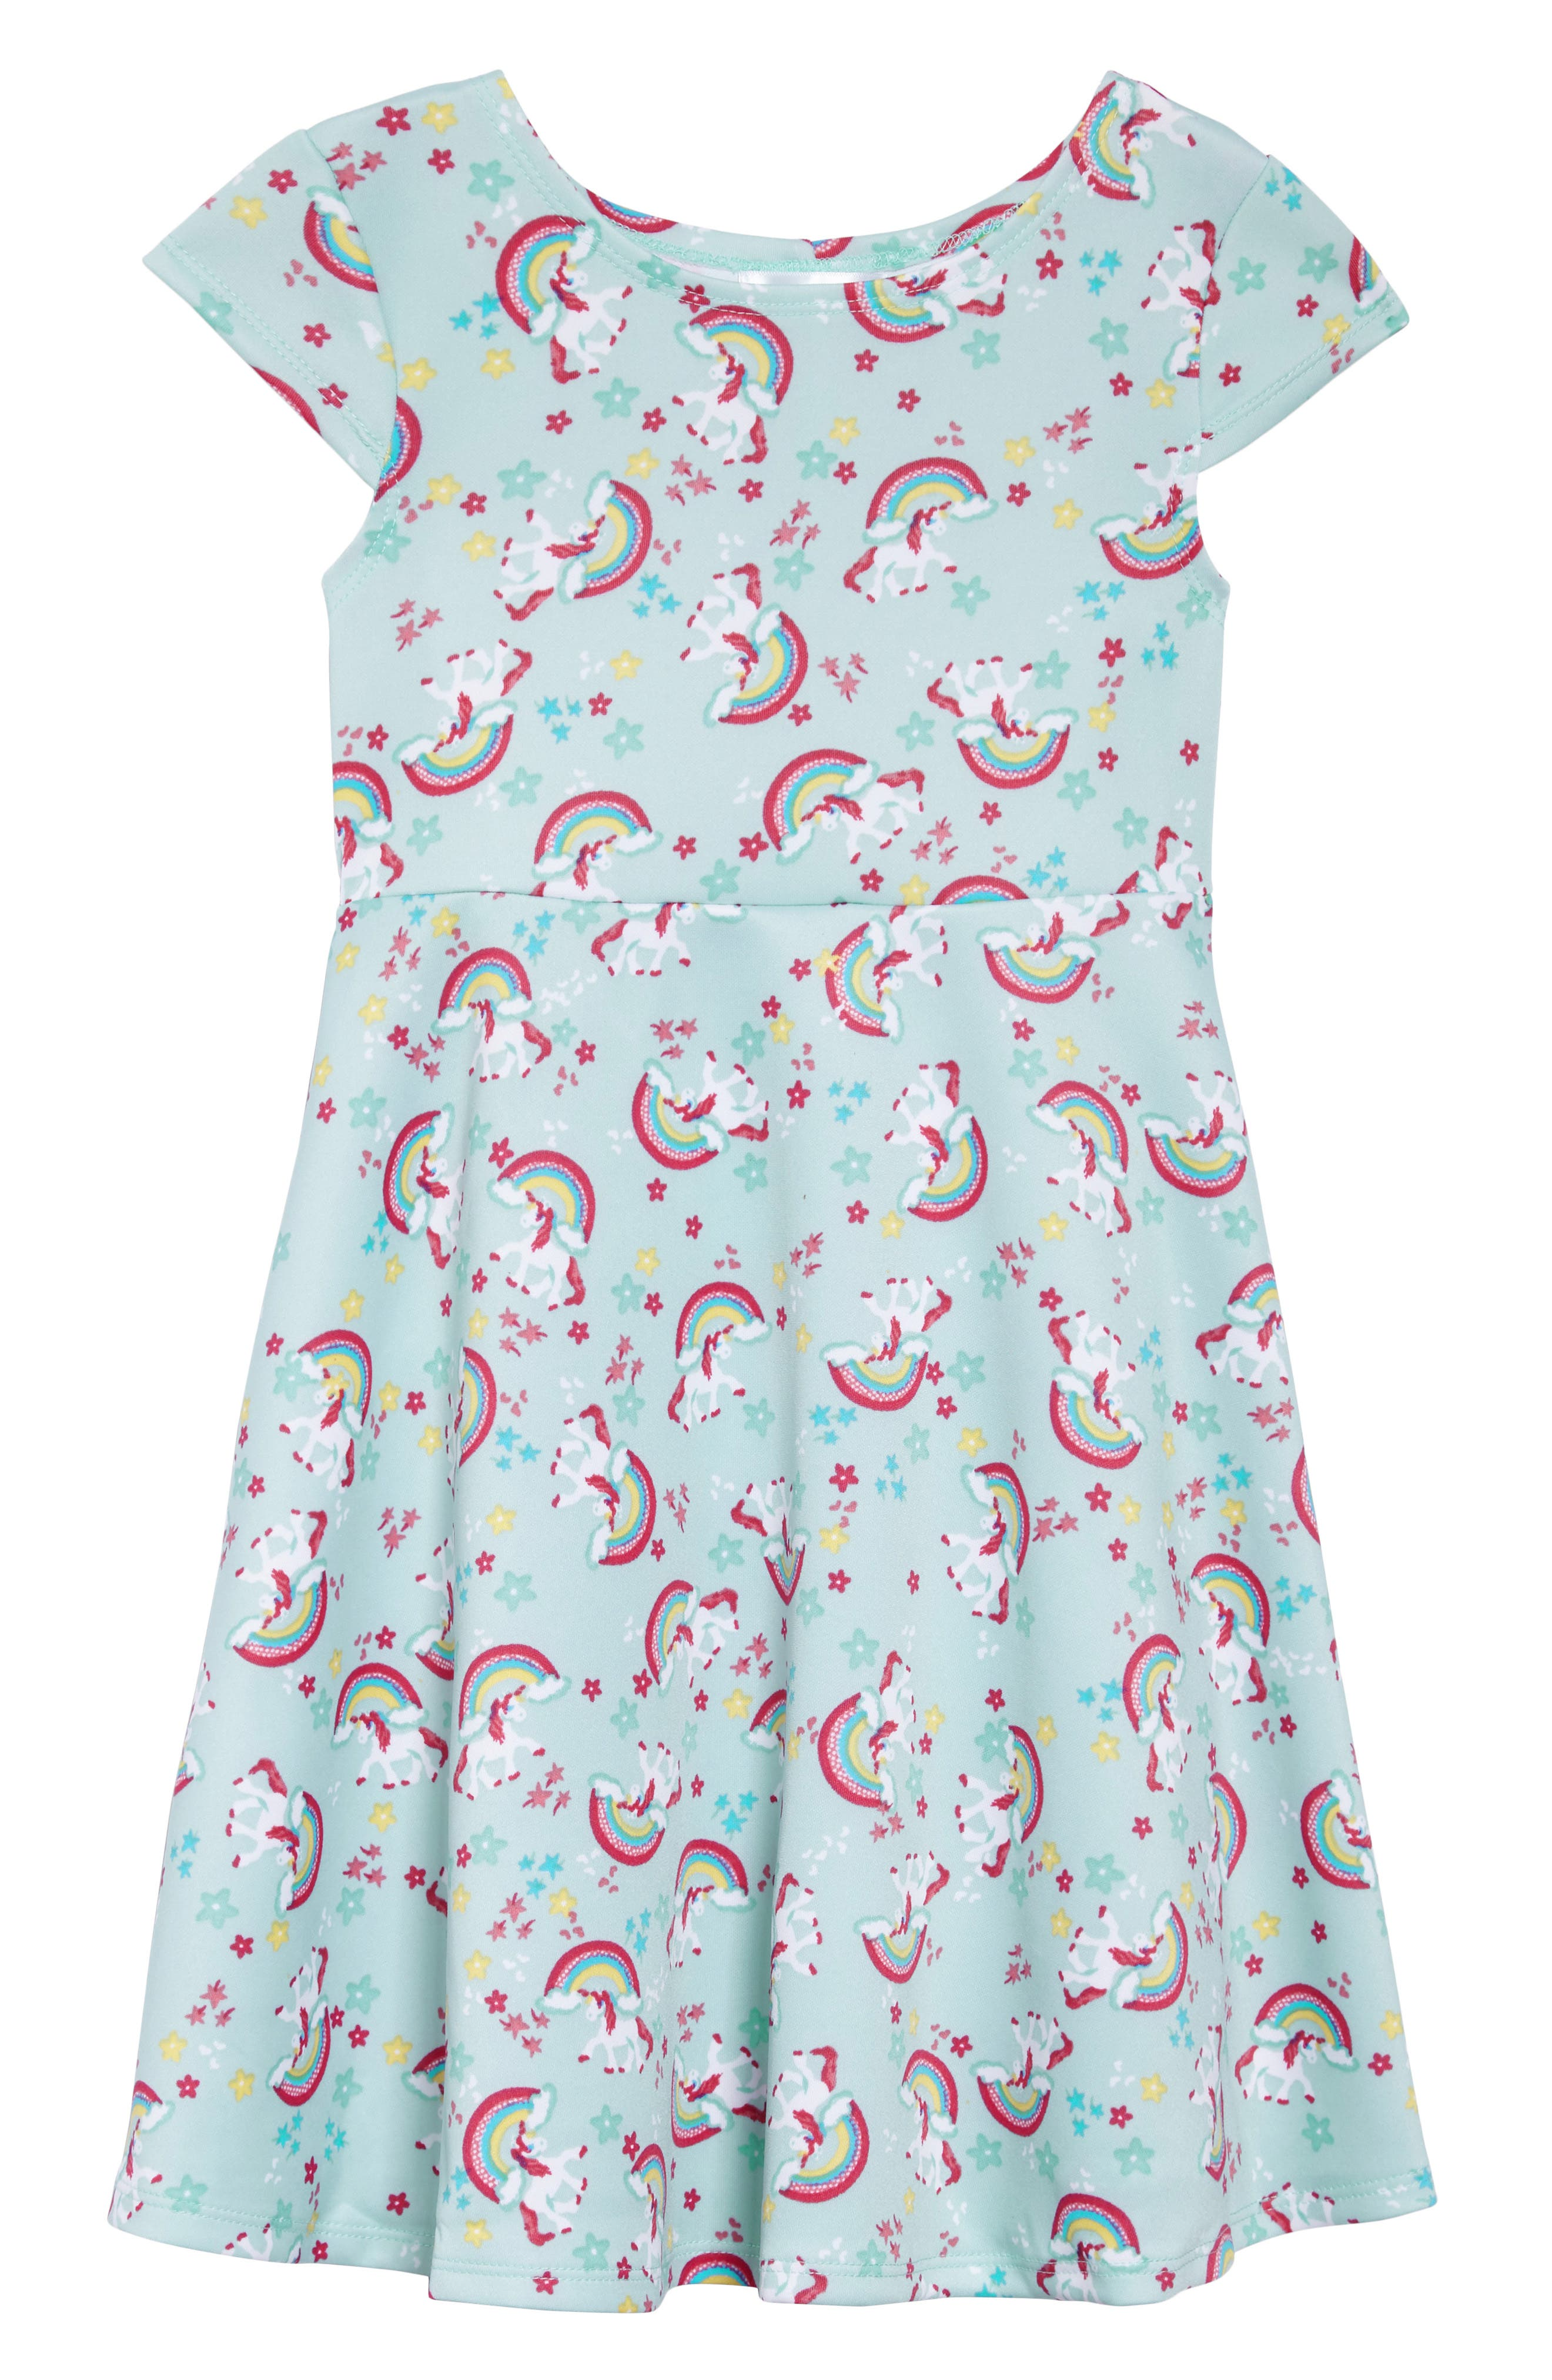 Unicorn Print Dress,                             Main thumbnail 1, color,                             Mint/ Pink